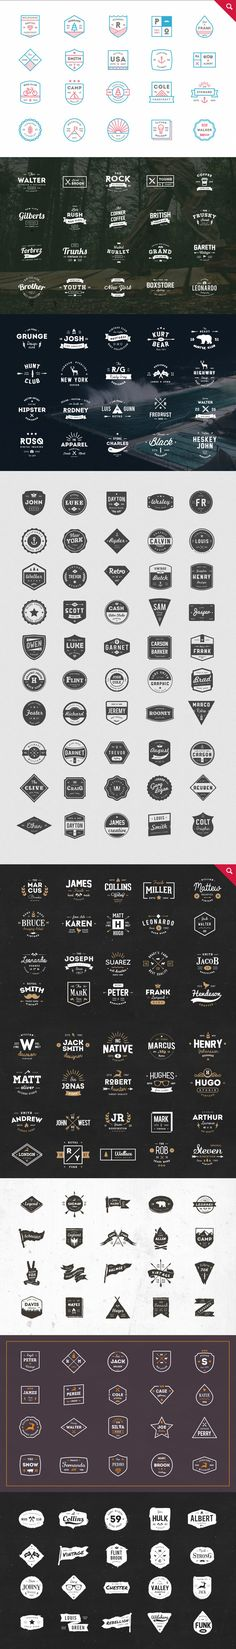 465 Logos Bundle - 90% off - Logos - 5